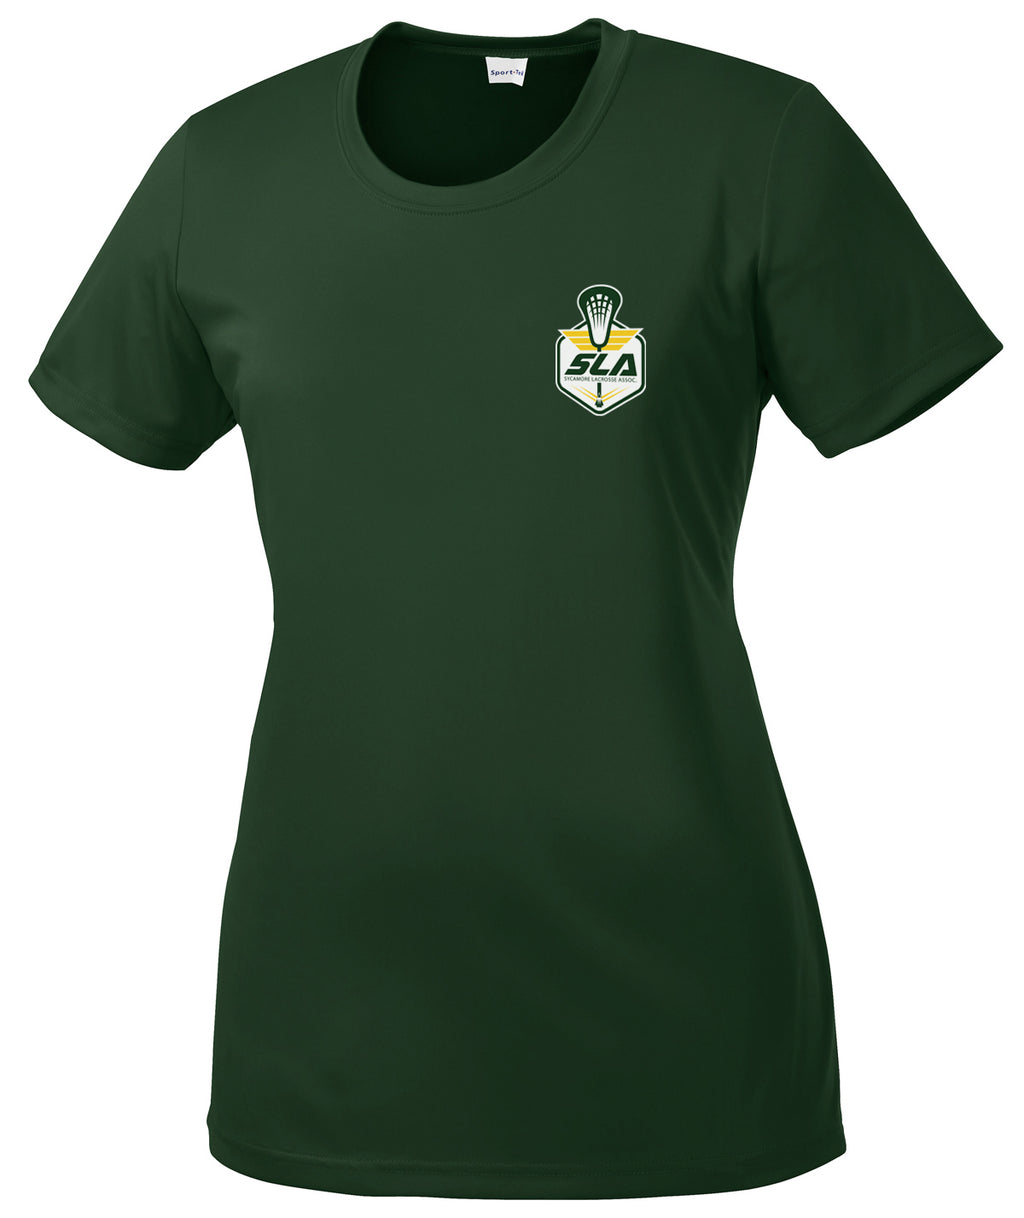 Sycamore Lacrosse Association Women's Forest Green Performance Tee